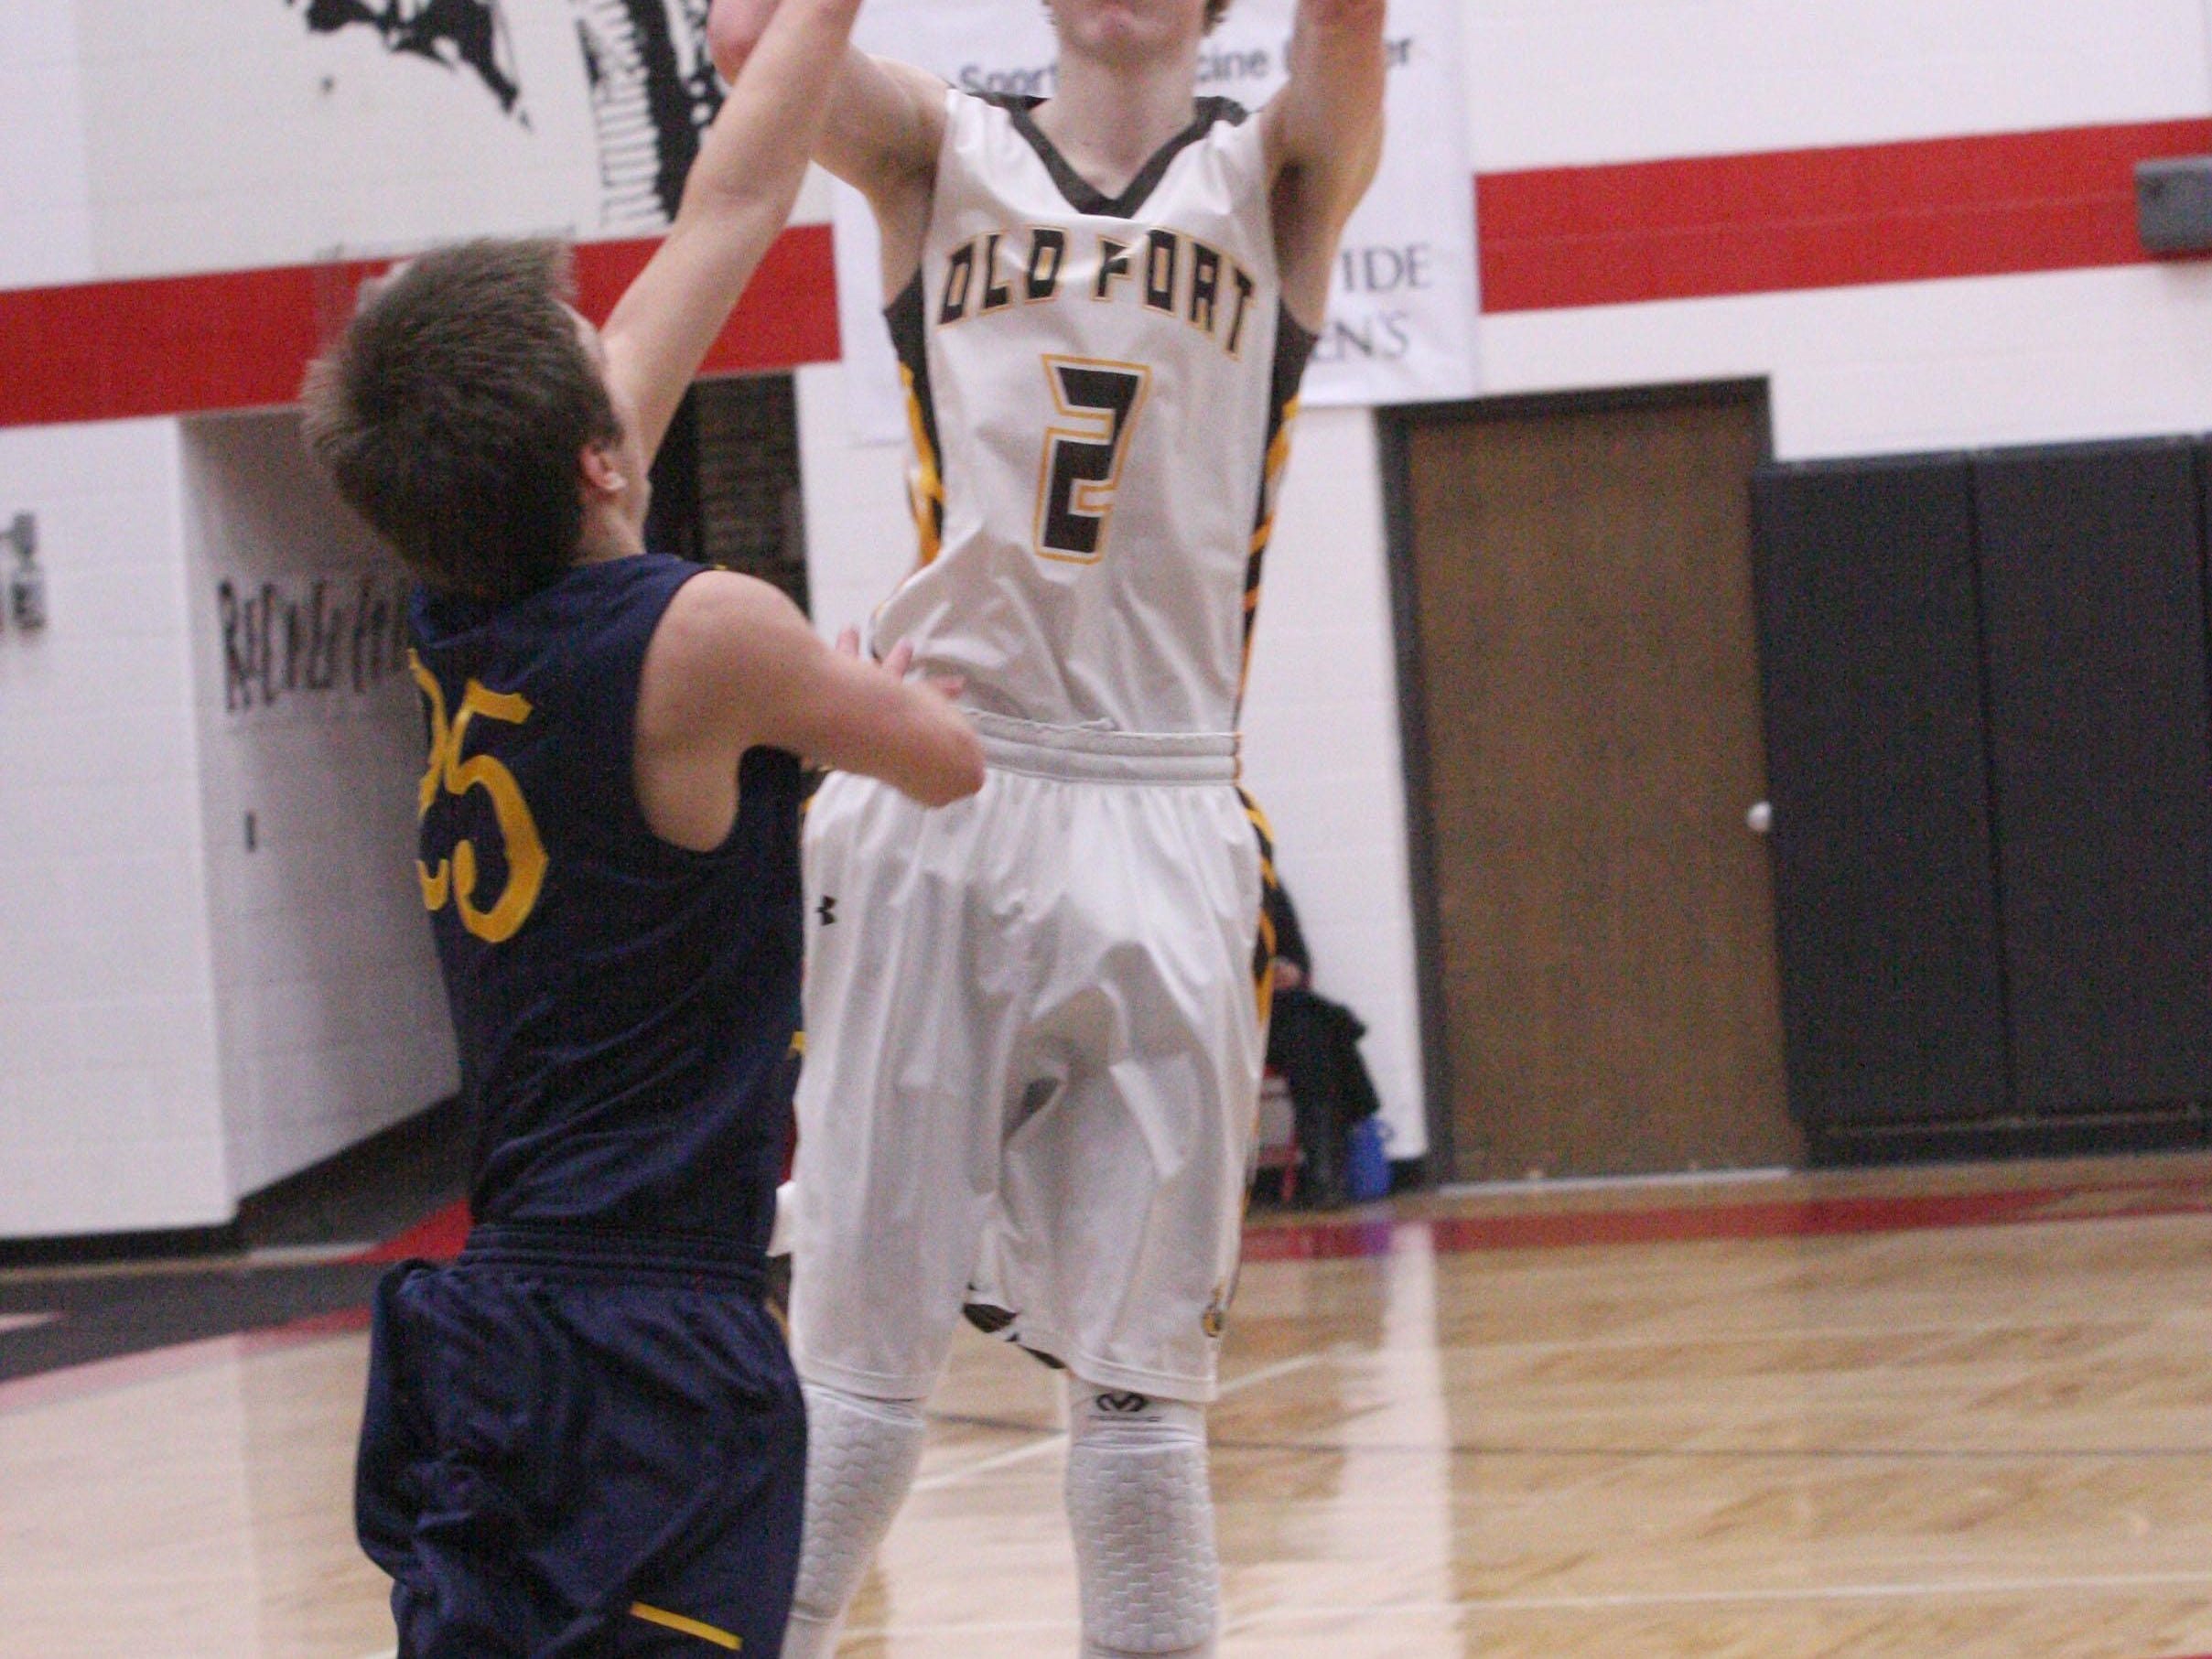 Old Fort's Hootie Cleveland shoots a 3-pointer against New Riegel's Travis Williams.